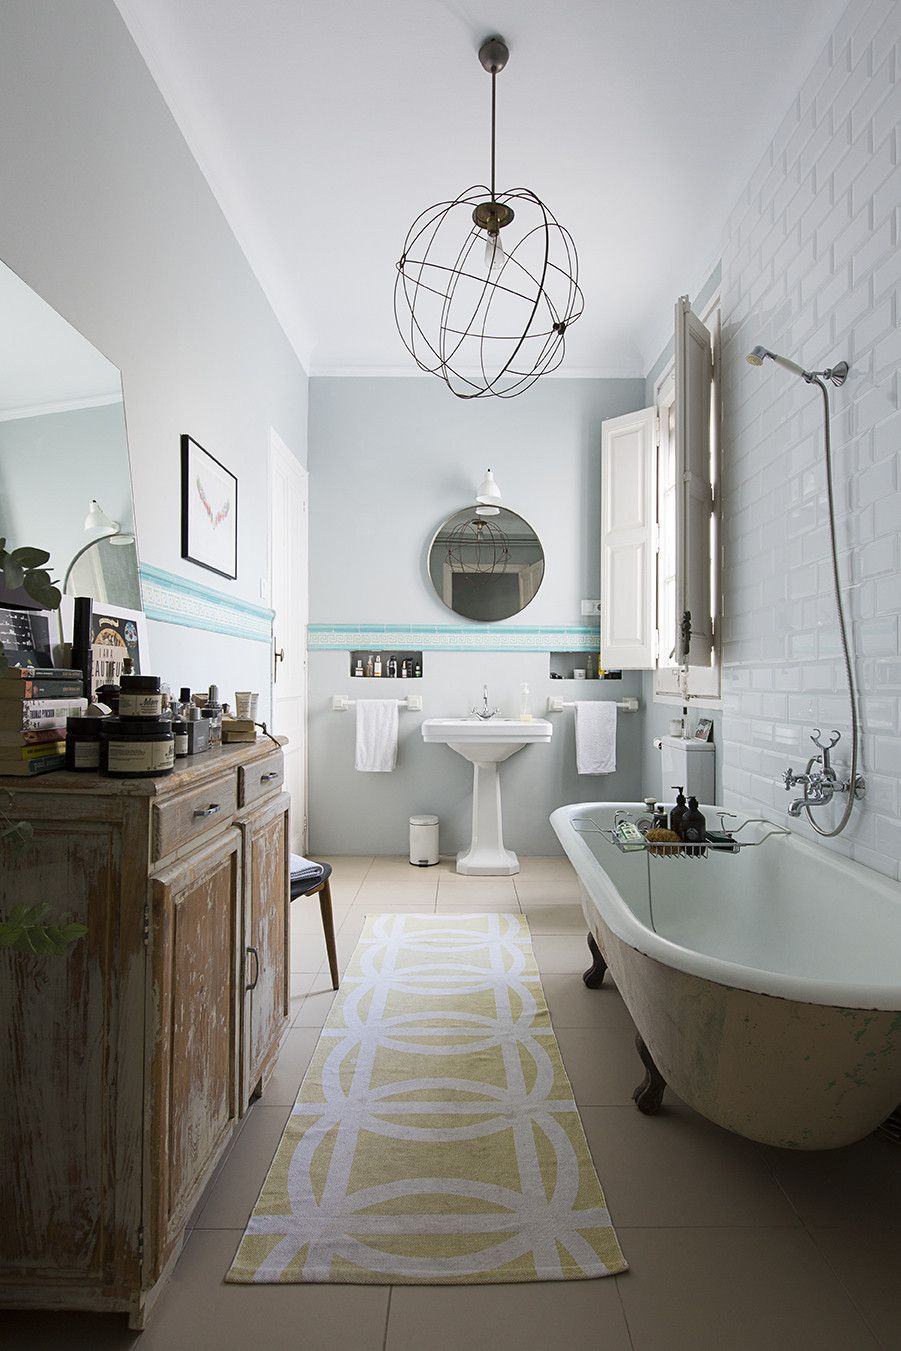 I Don T Like It When Bathrooms Look Too Much Say Kayser He Removed The Telltale Tiling Beneath Greek Key Trim Layering In Books